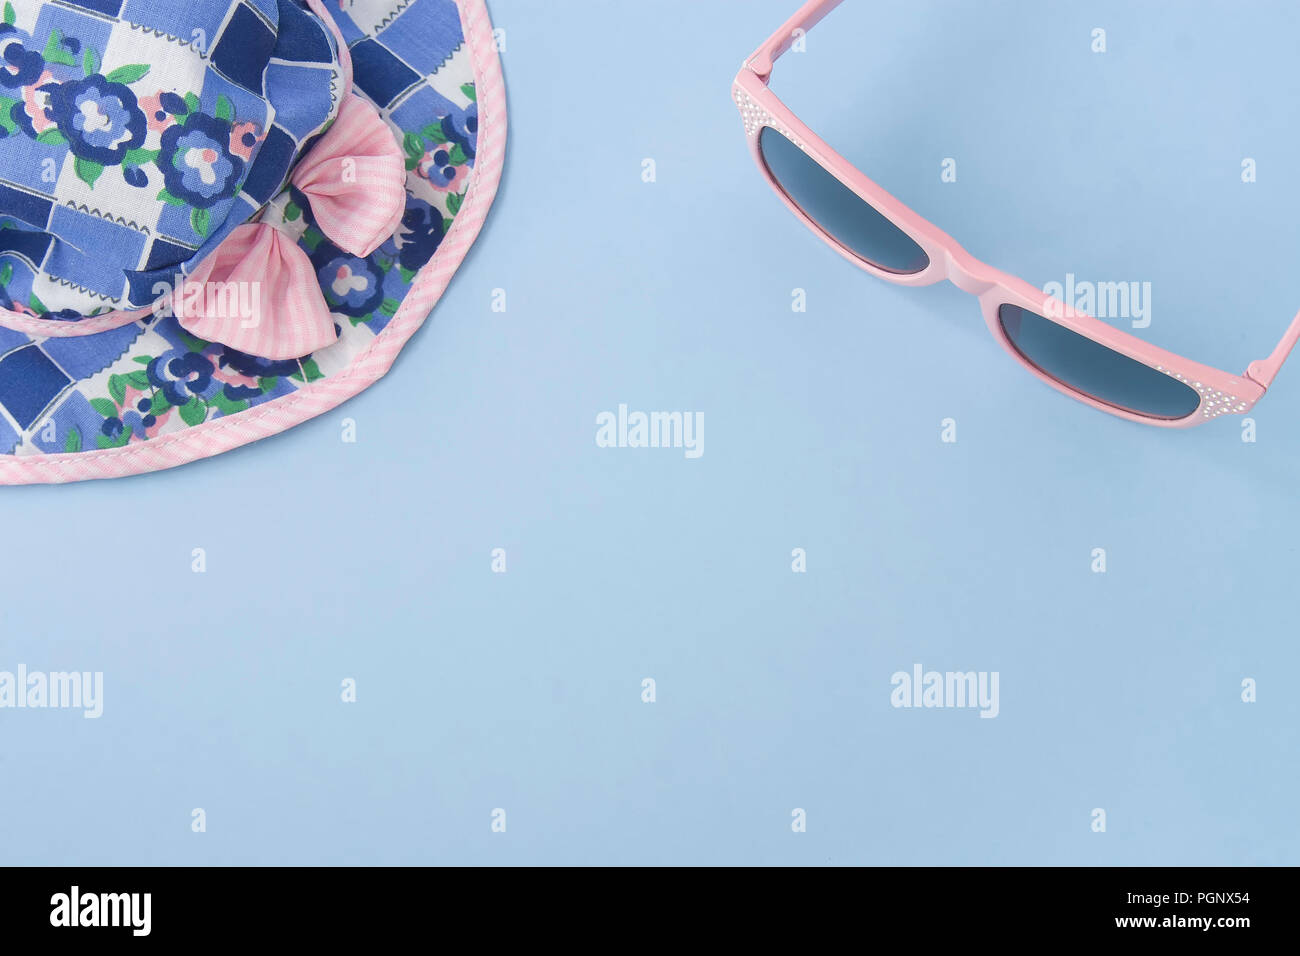 Colorful hat and pink sunglasses isolated on light blue pastel background. Space for text. Flat lay style. Stock Photo